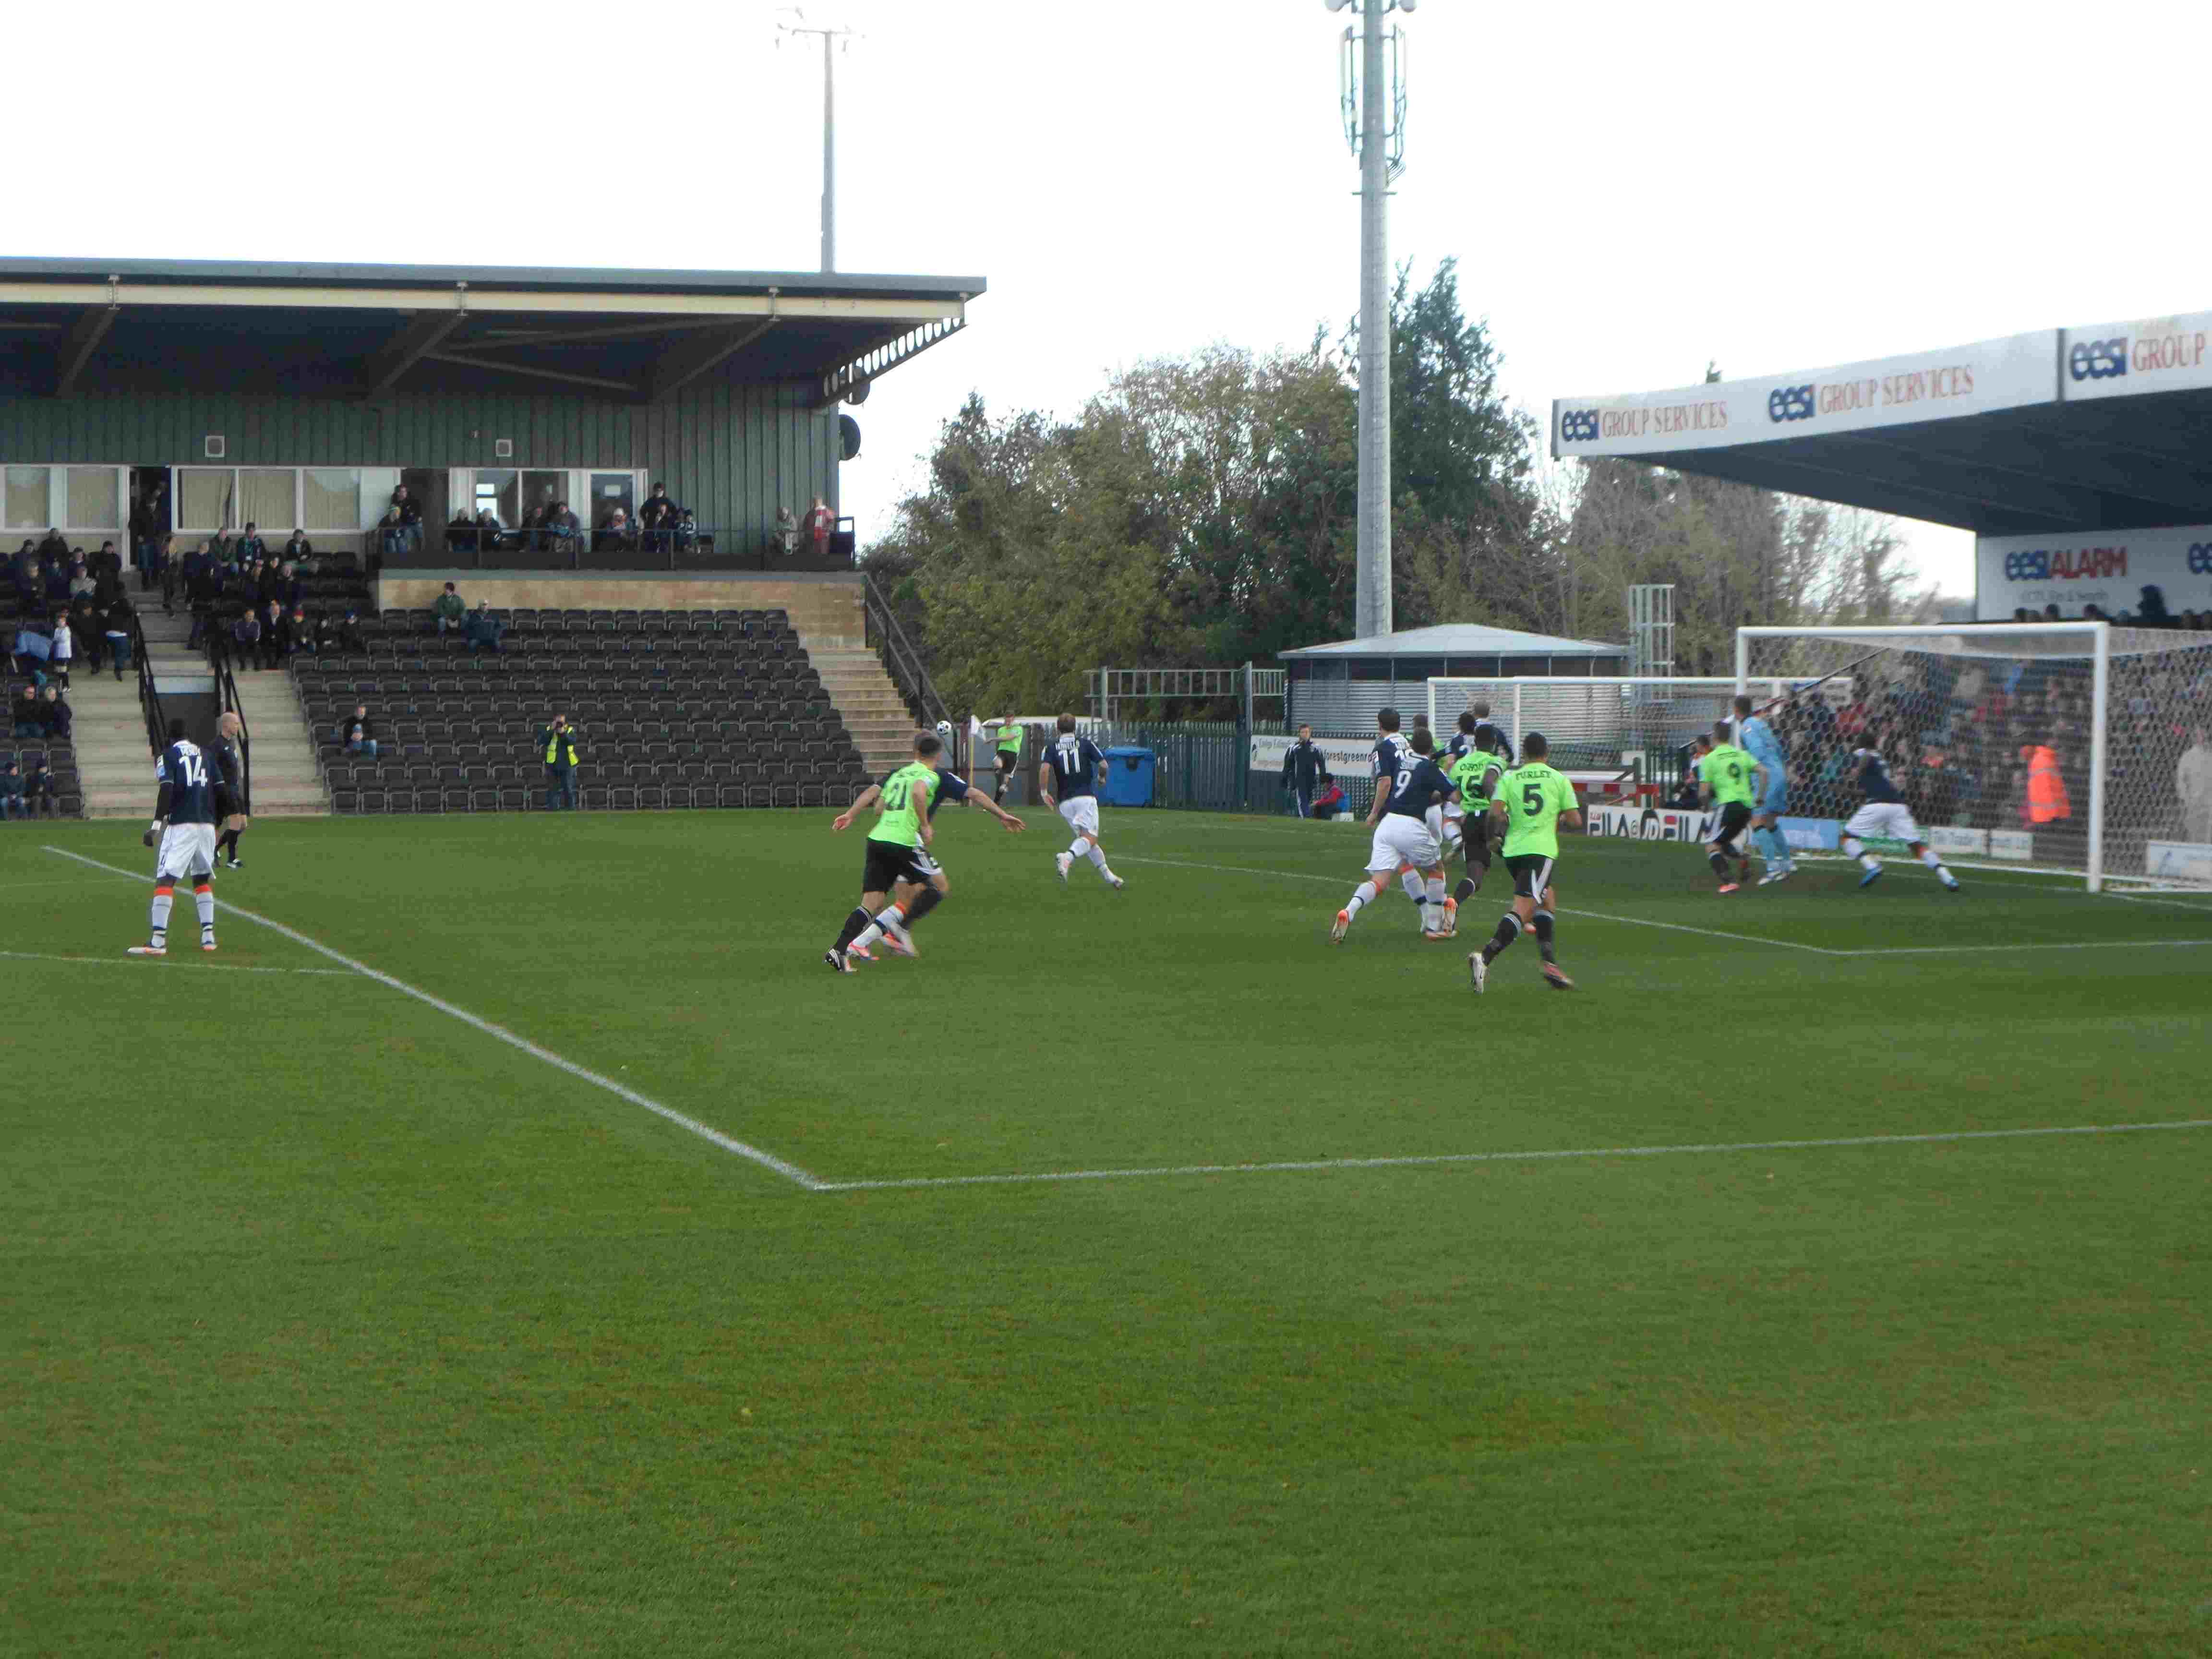 Forest Green Rovers Football Club vs. Luton Town Football Club